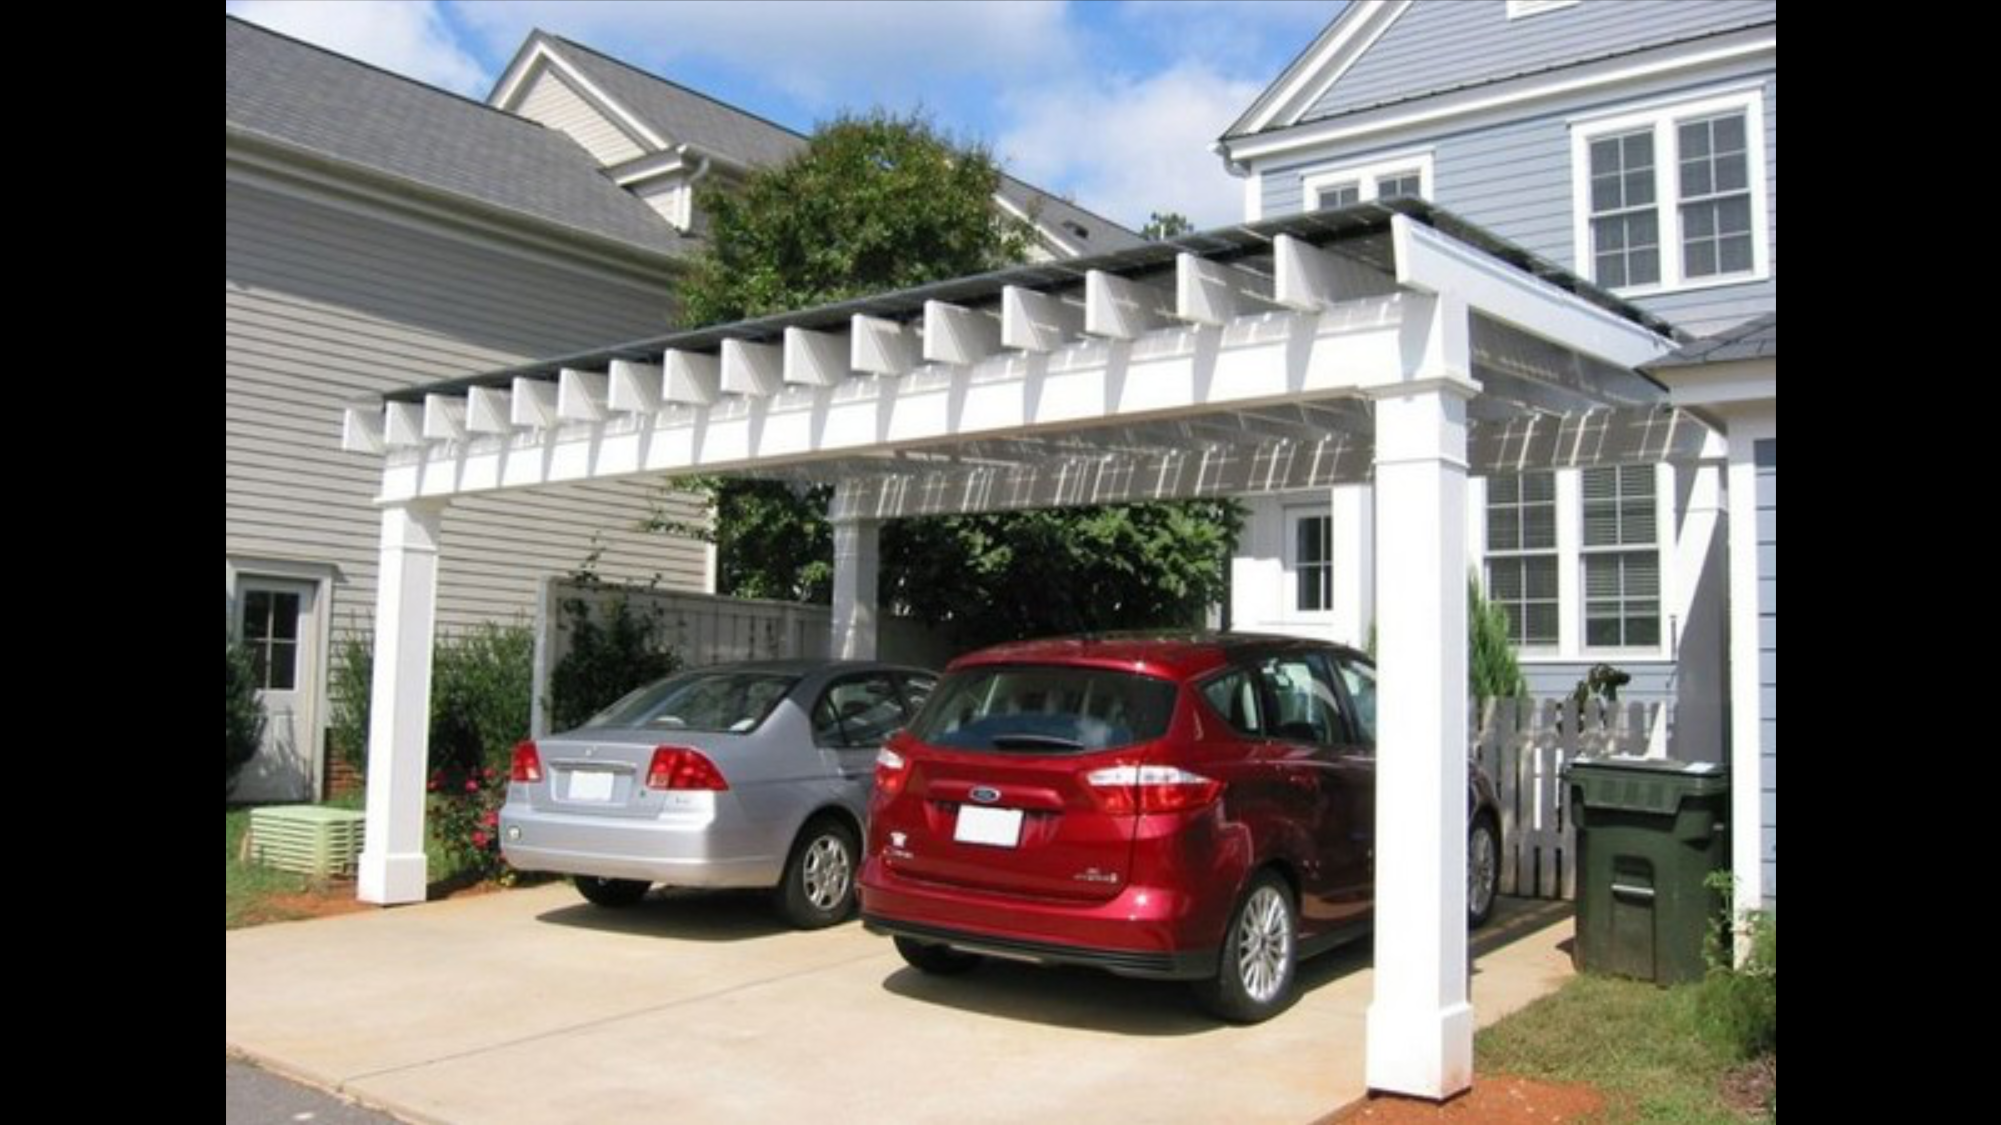 Carport Design Is Good Ideas To Beautify Facade, Bungalow And